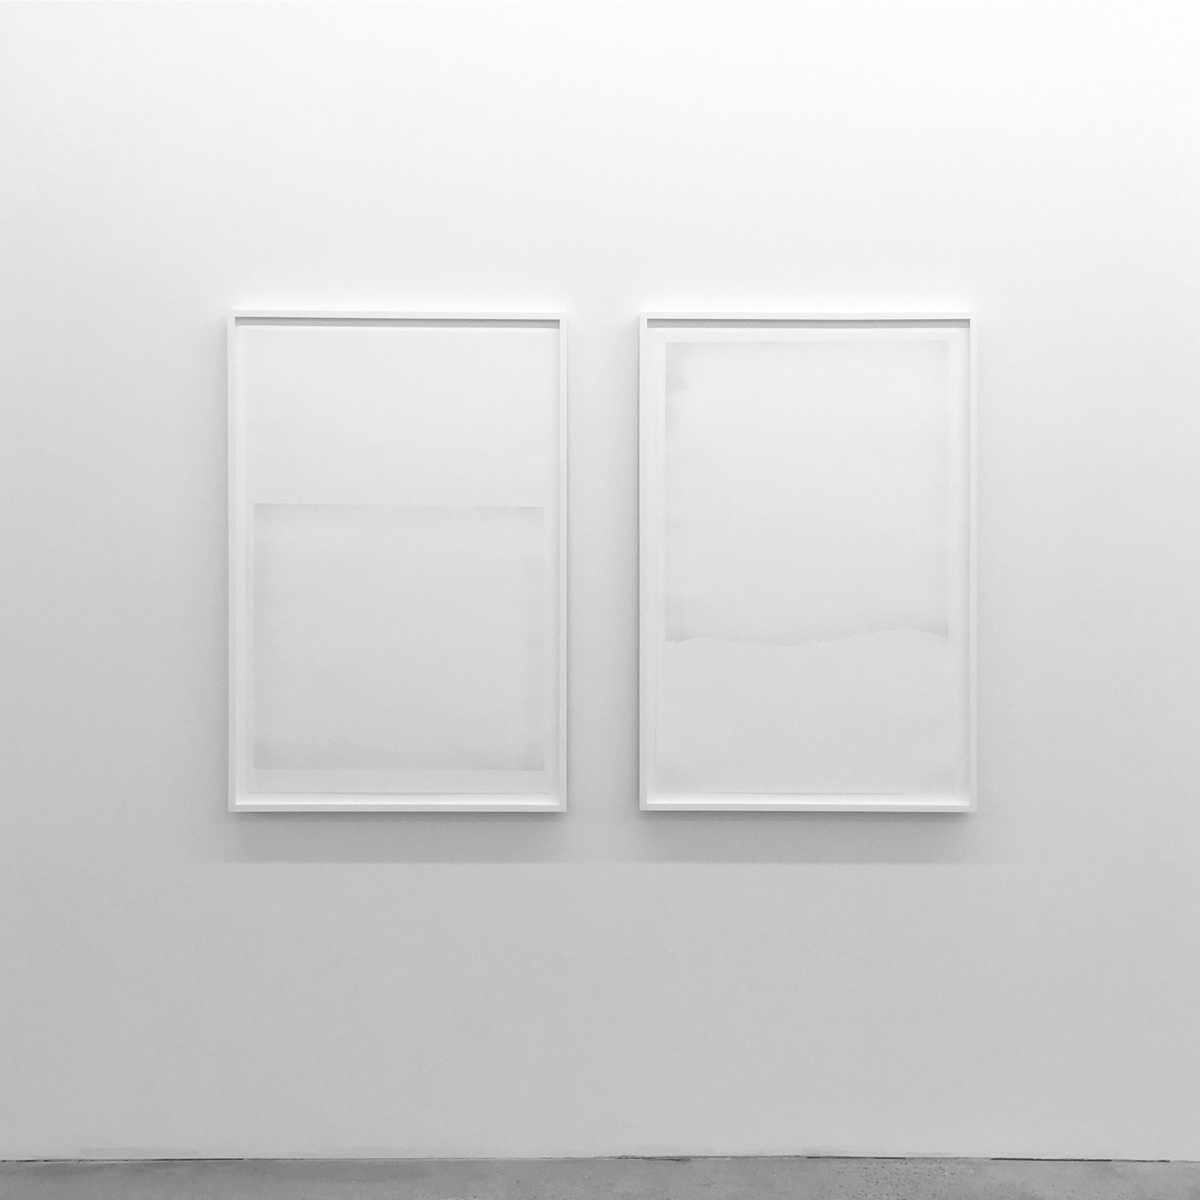 Untitled (Graphite #1 and #2, from the series An Accurate Silence)  Powered graphite on cotton paper 2016, 42 x 28 inches each